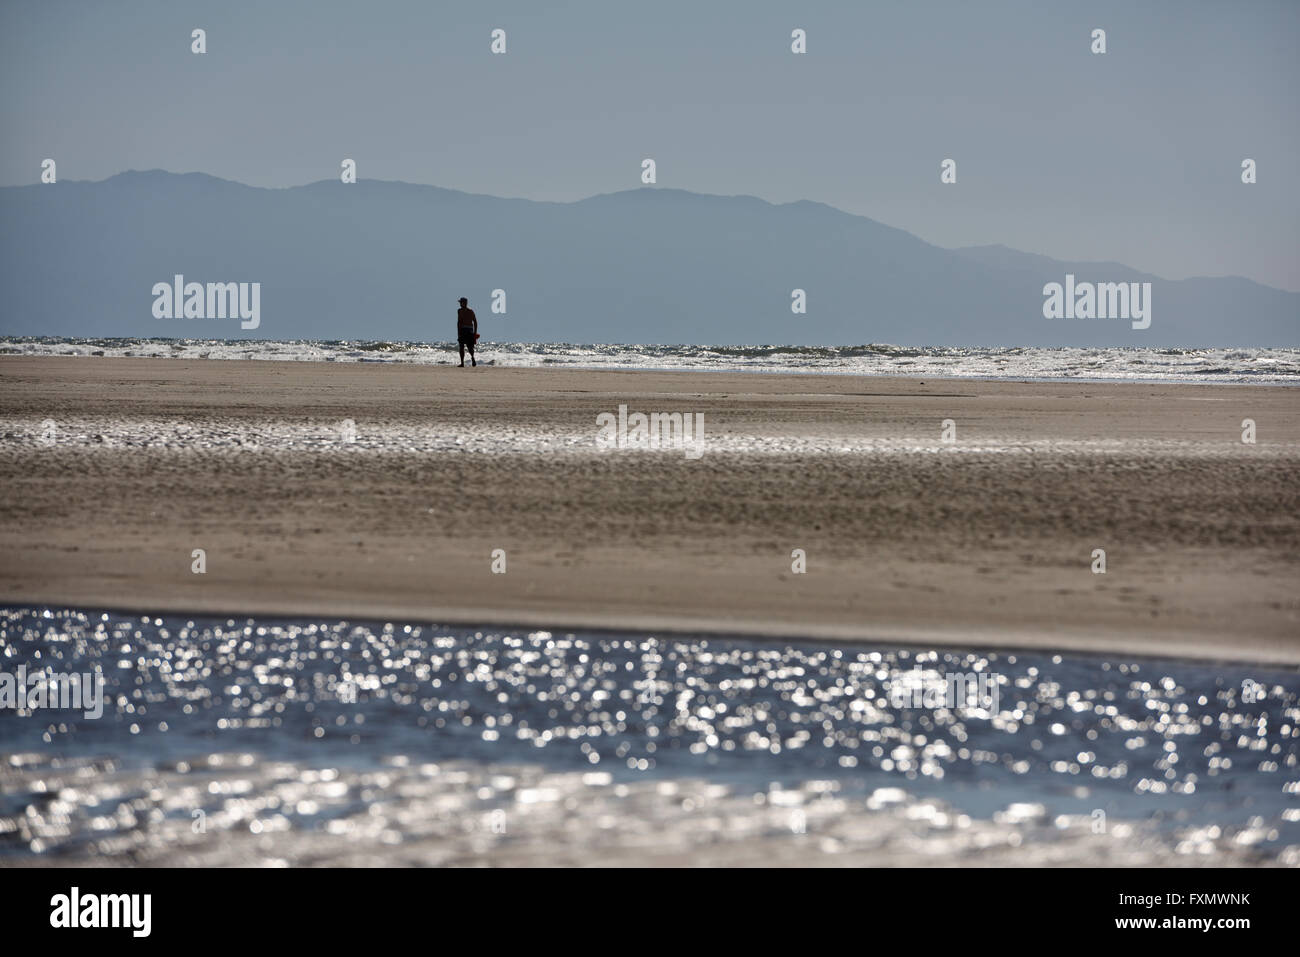 Man walking on beach at Nuevo Vallarta Mexico with Pacific ocean and Sierra Madre Mountains - Stock Image